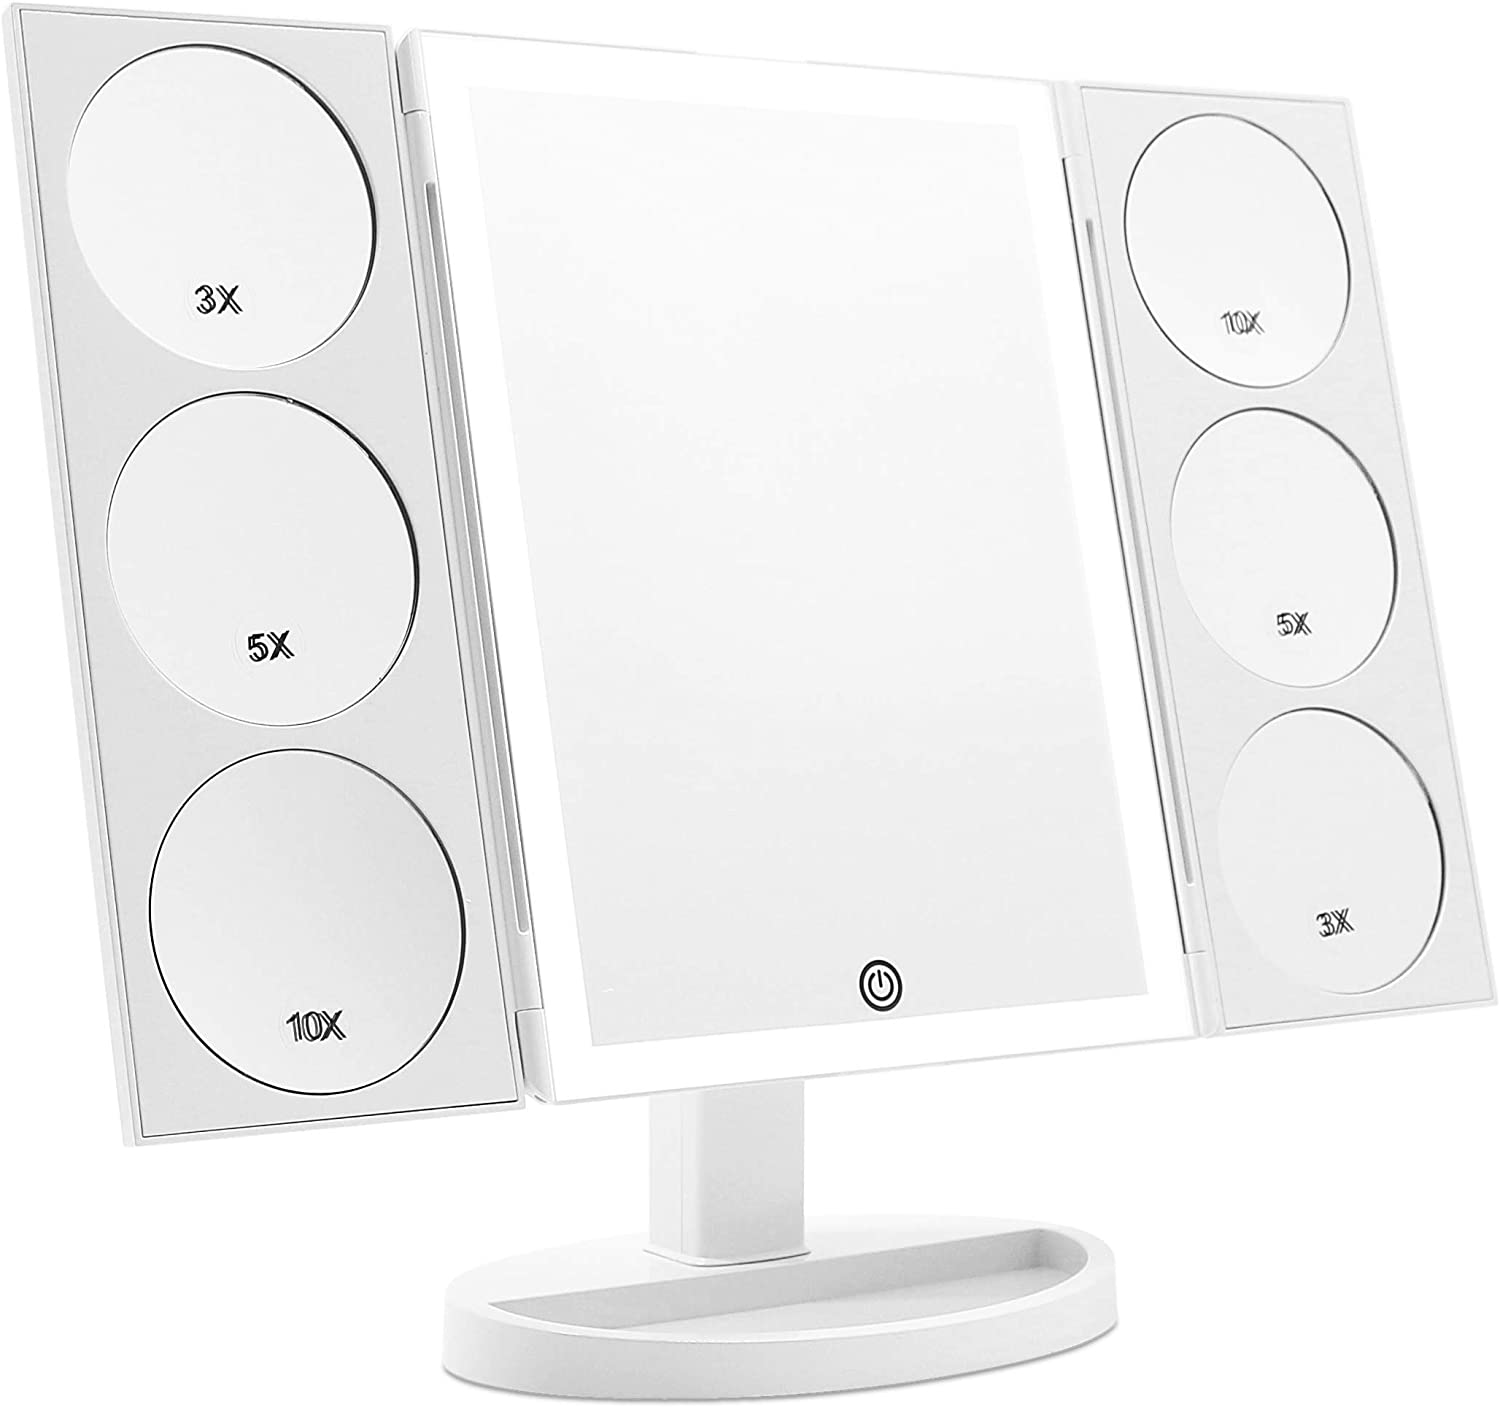 Mirrorvana 3X,5X,10X Lighted Tabletop Makeup Mirror Reviews